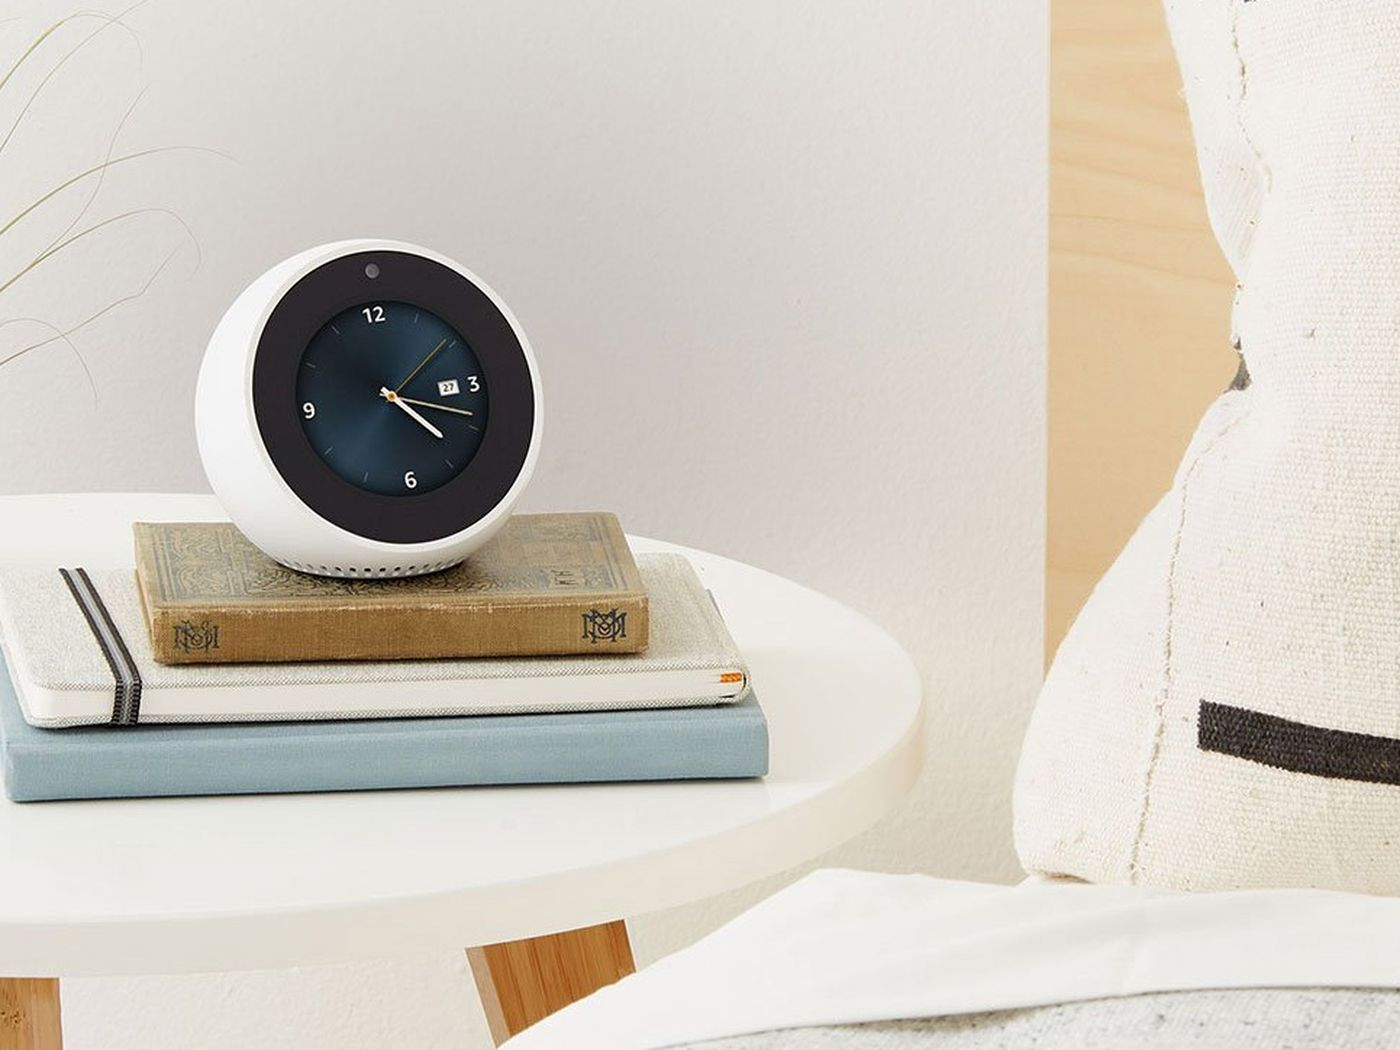 Amazons Echo Spot Is A Sneaky Way To Get Camera Into Your Bedroom 3 Switch The Verge